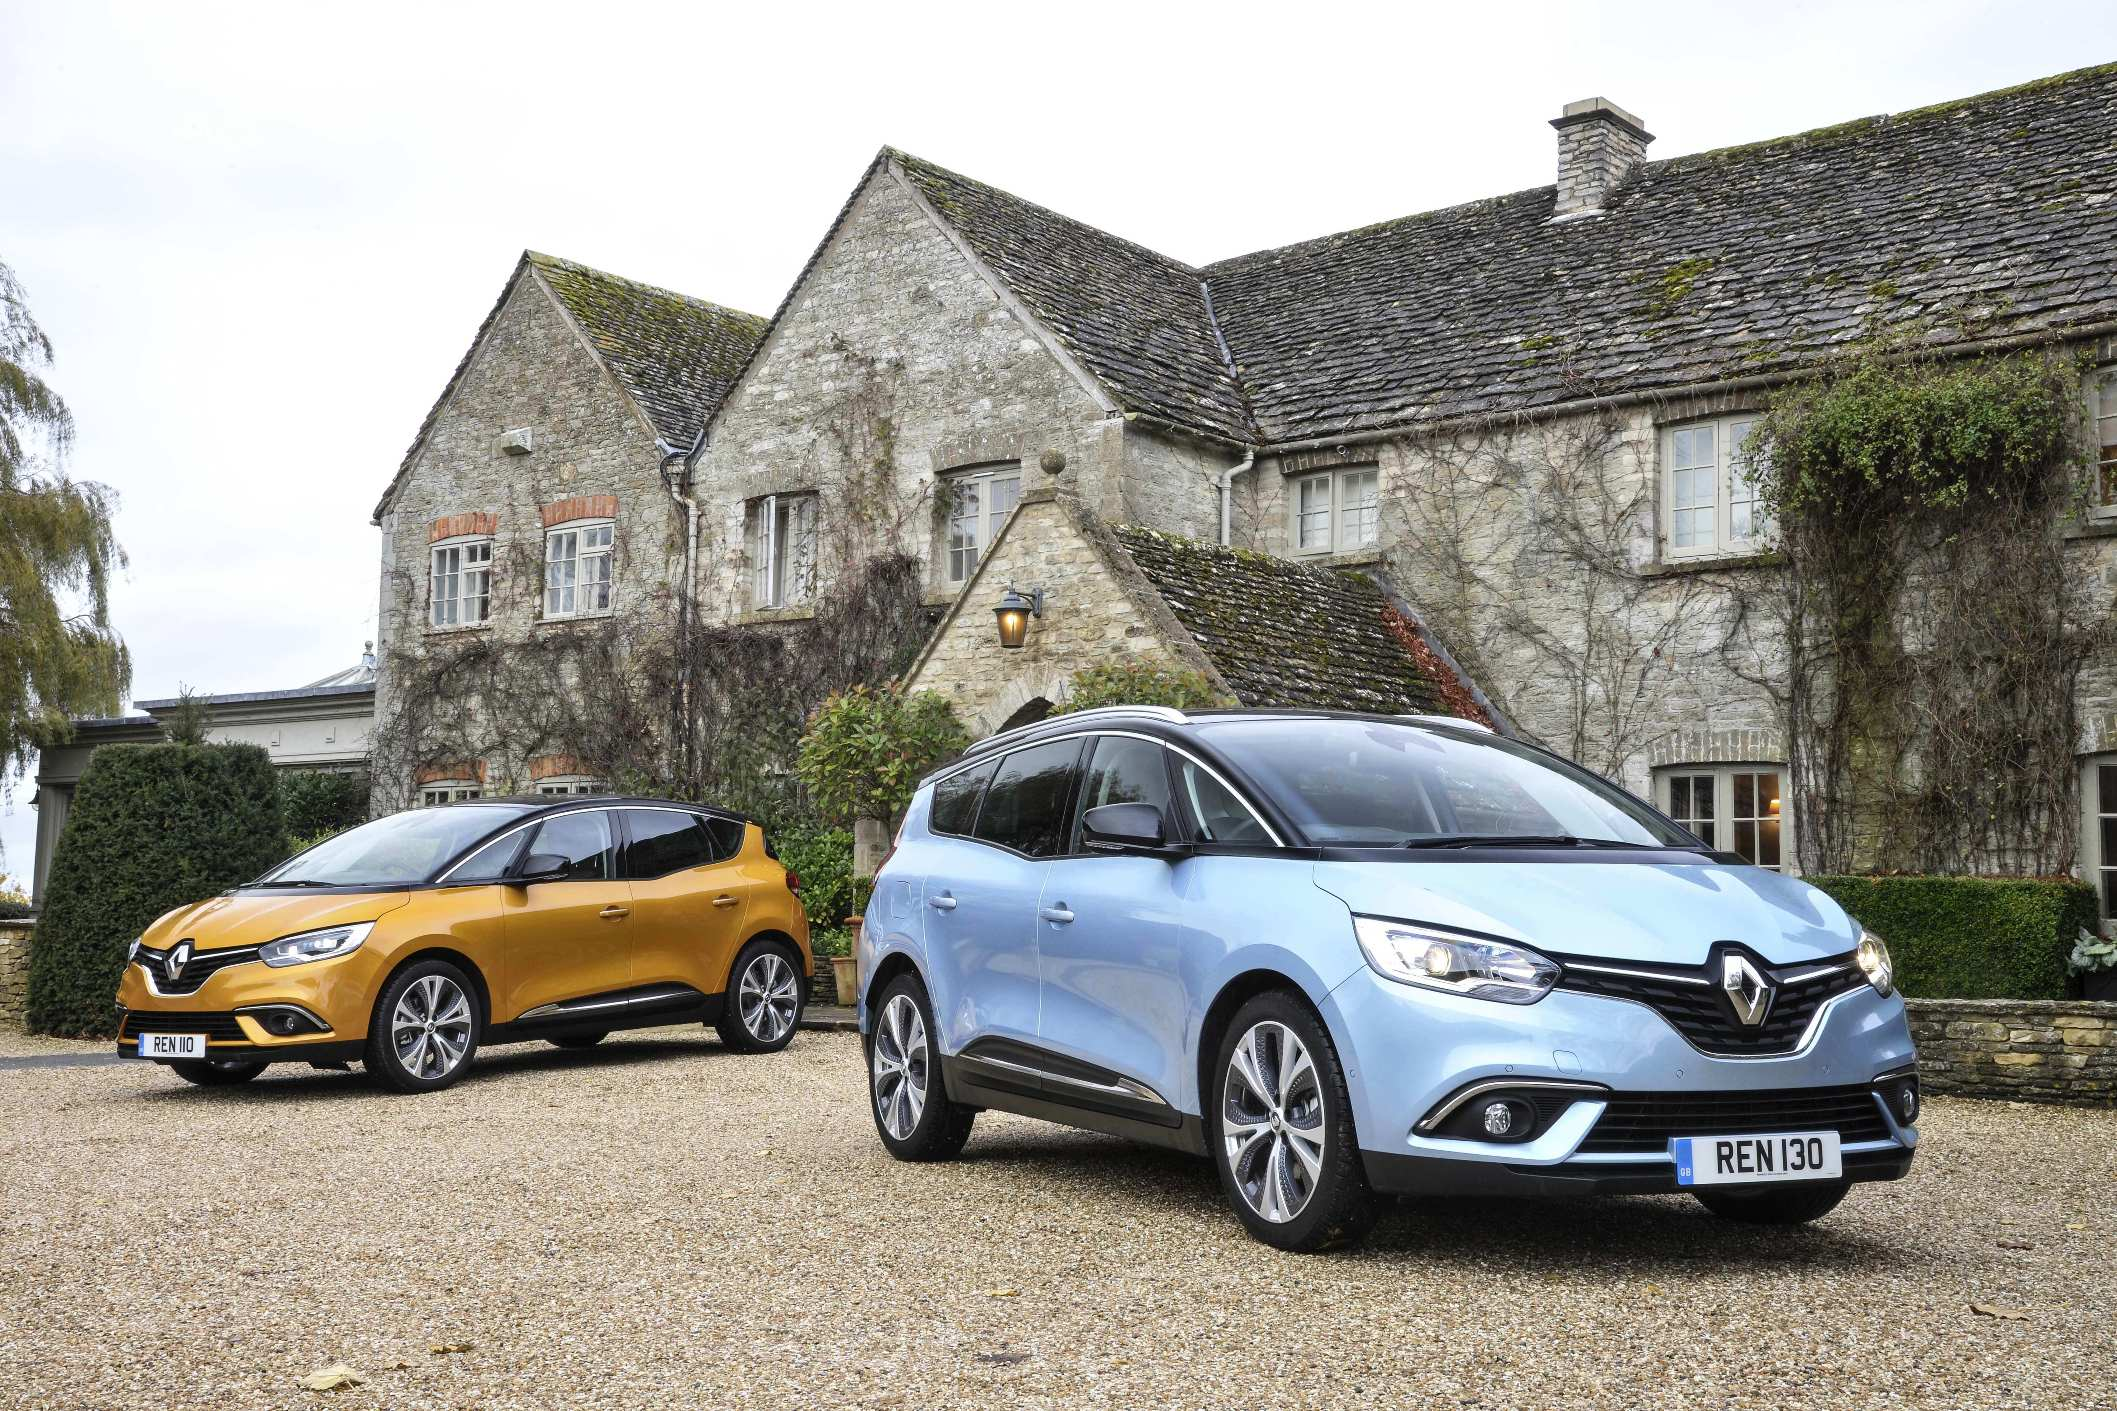 renaults-all-new-scenic-left-and-grand-scenic-models